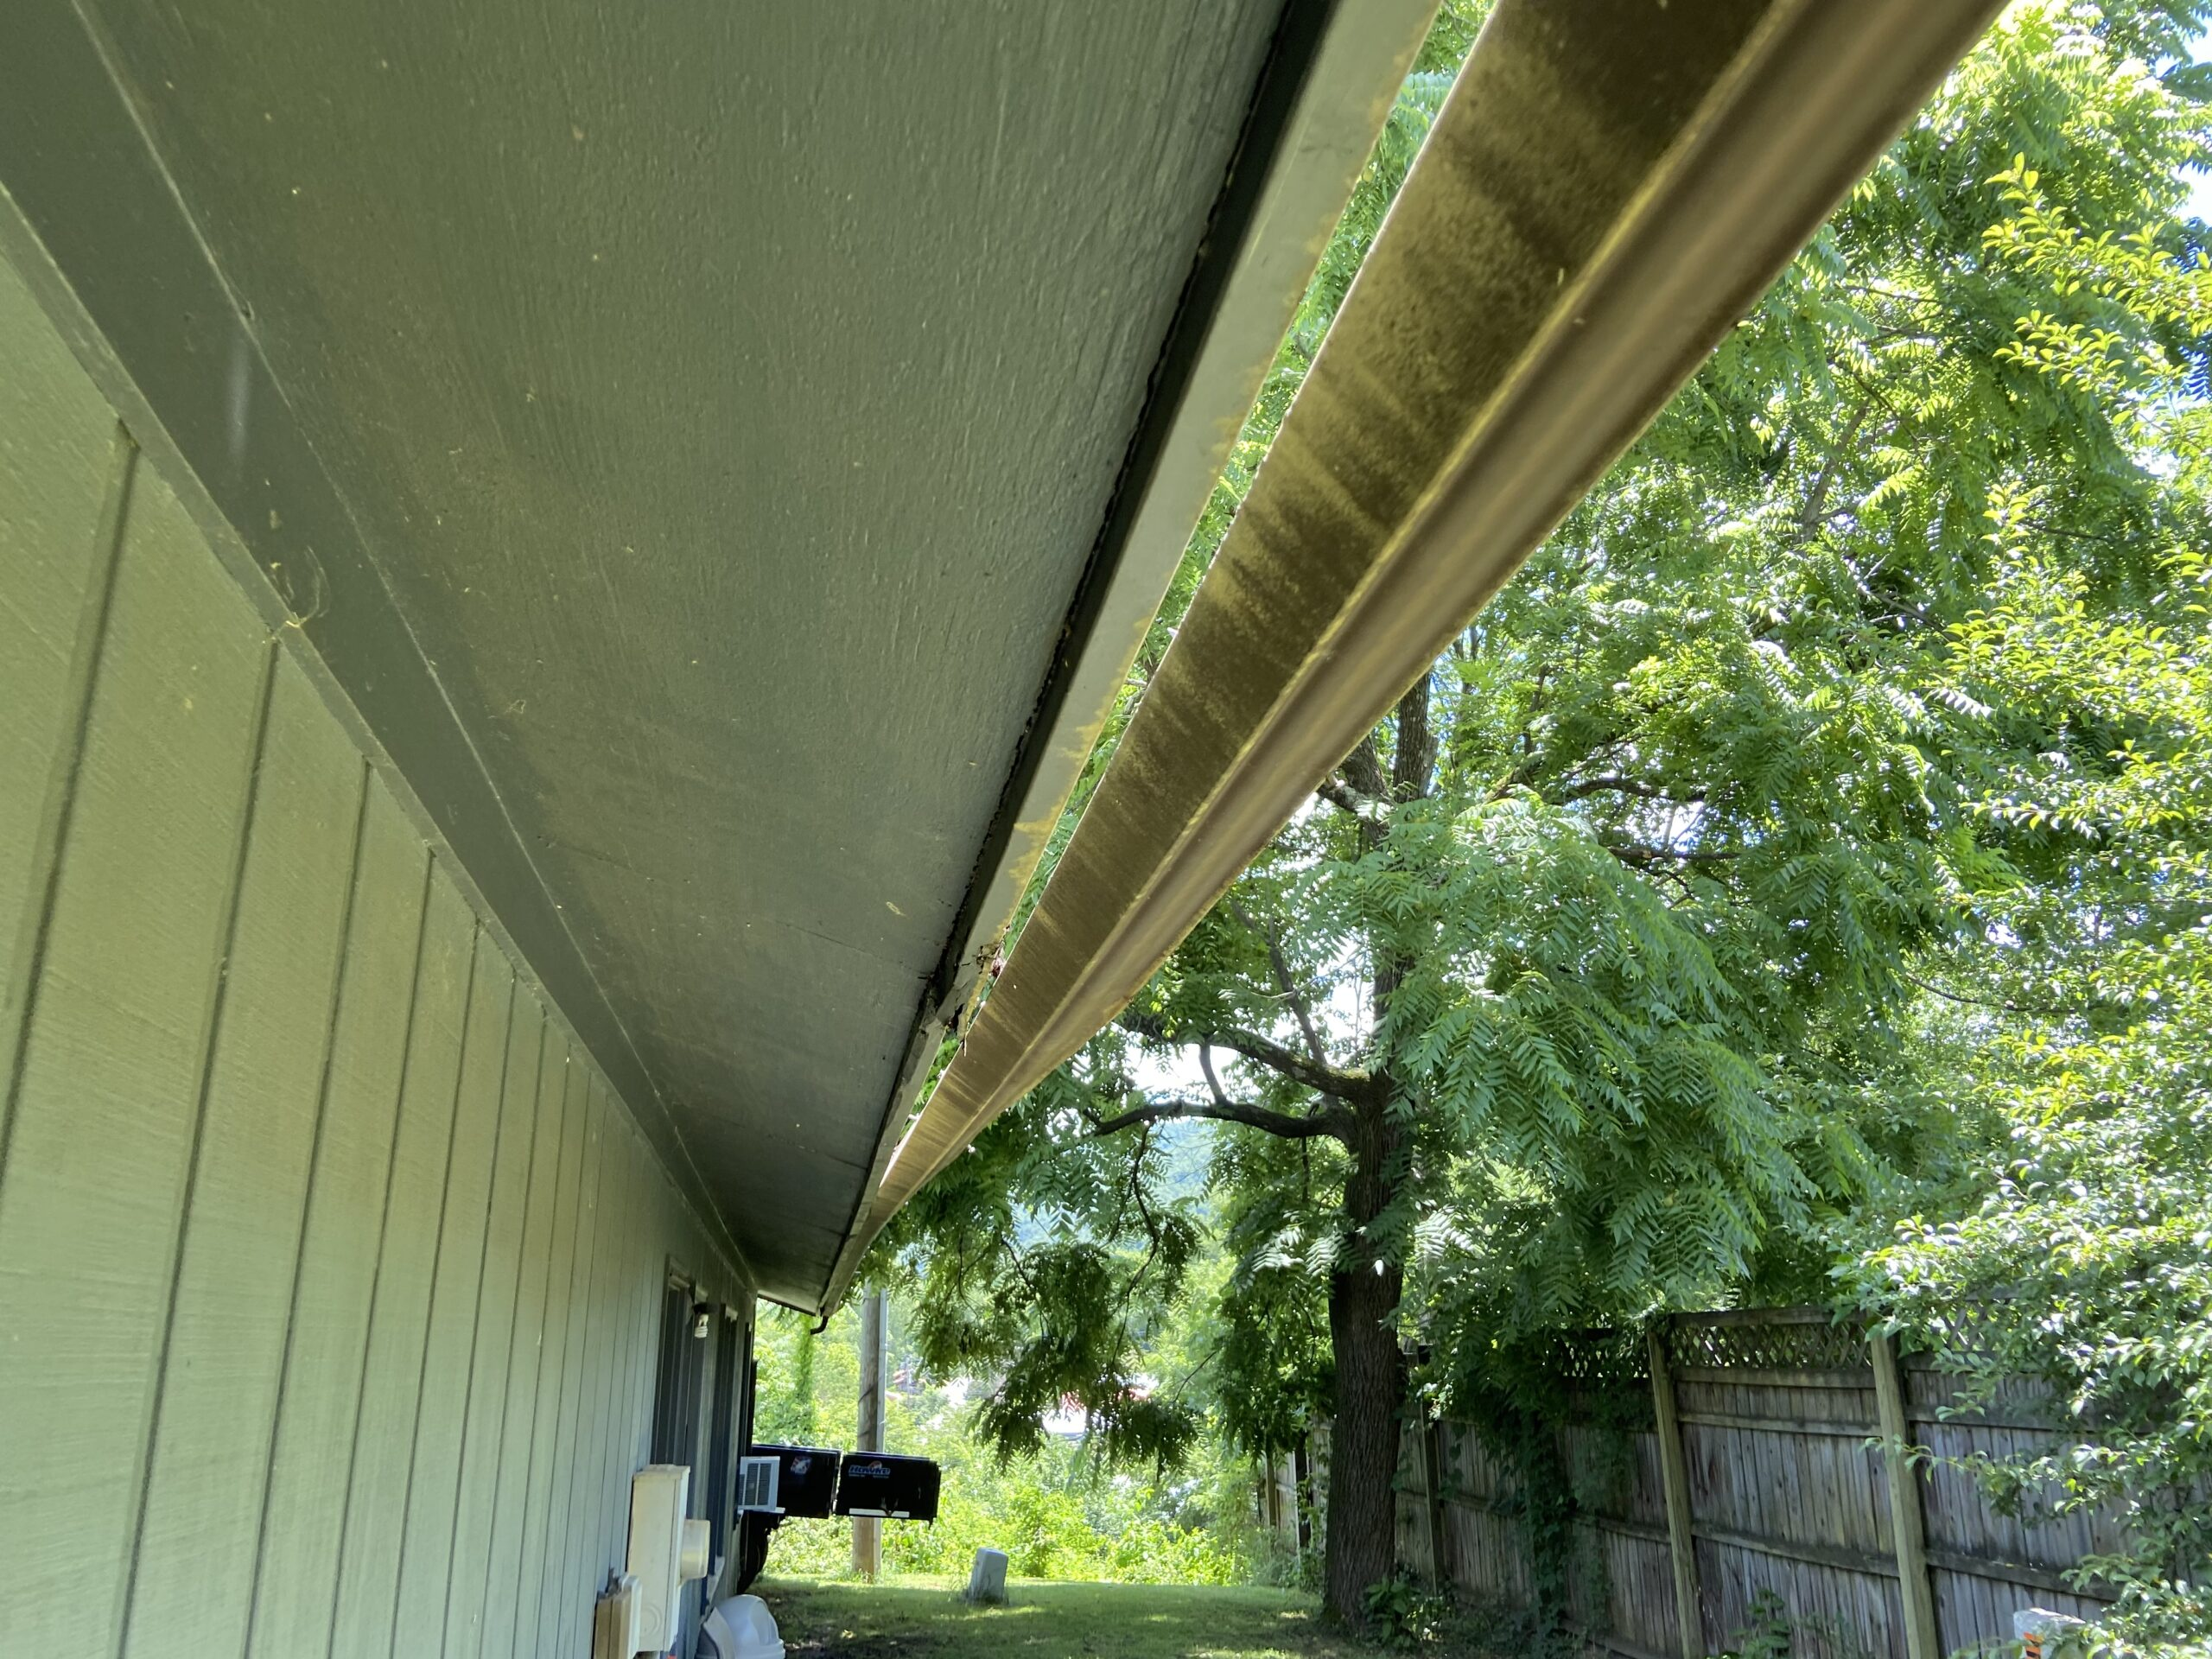 Existing Gutters Have Wind Damage